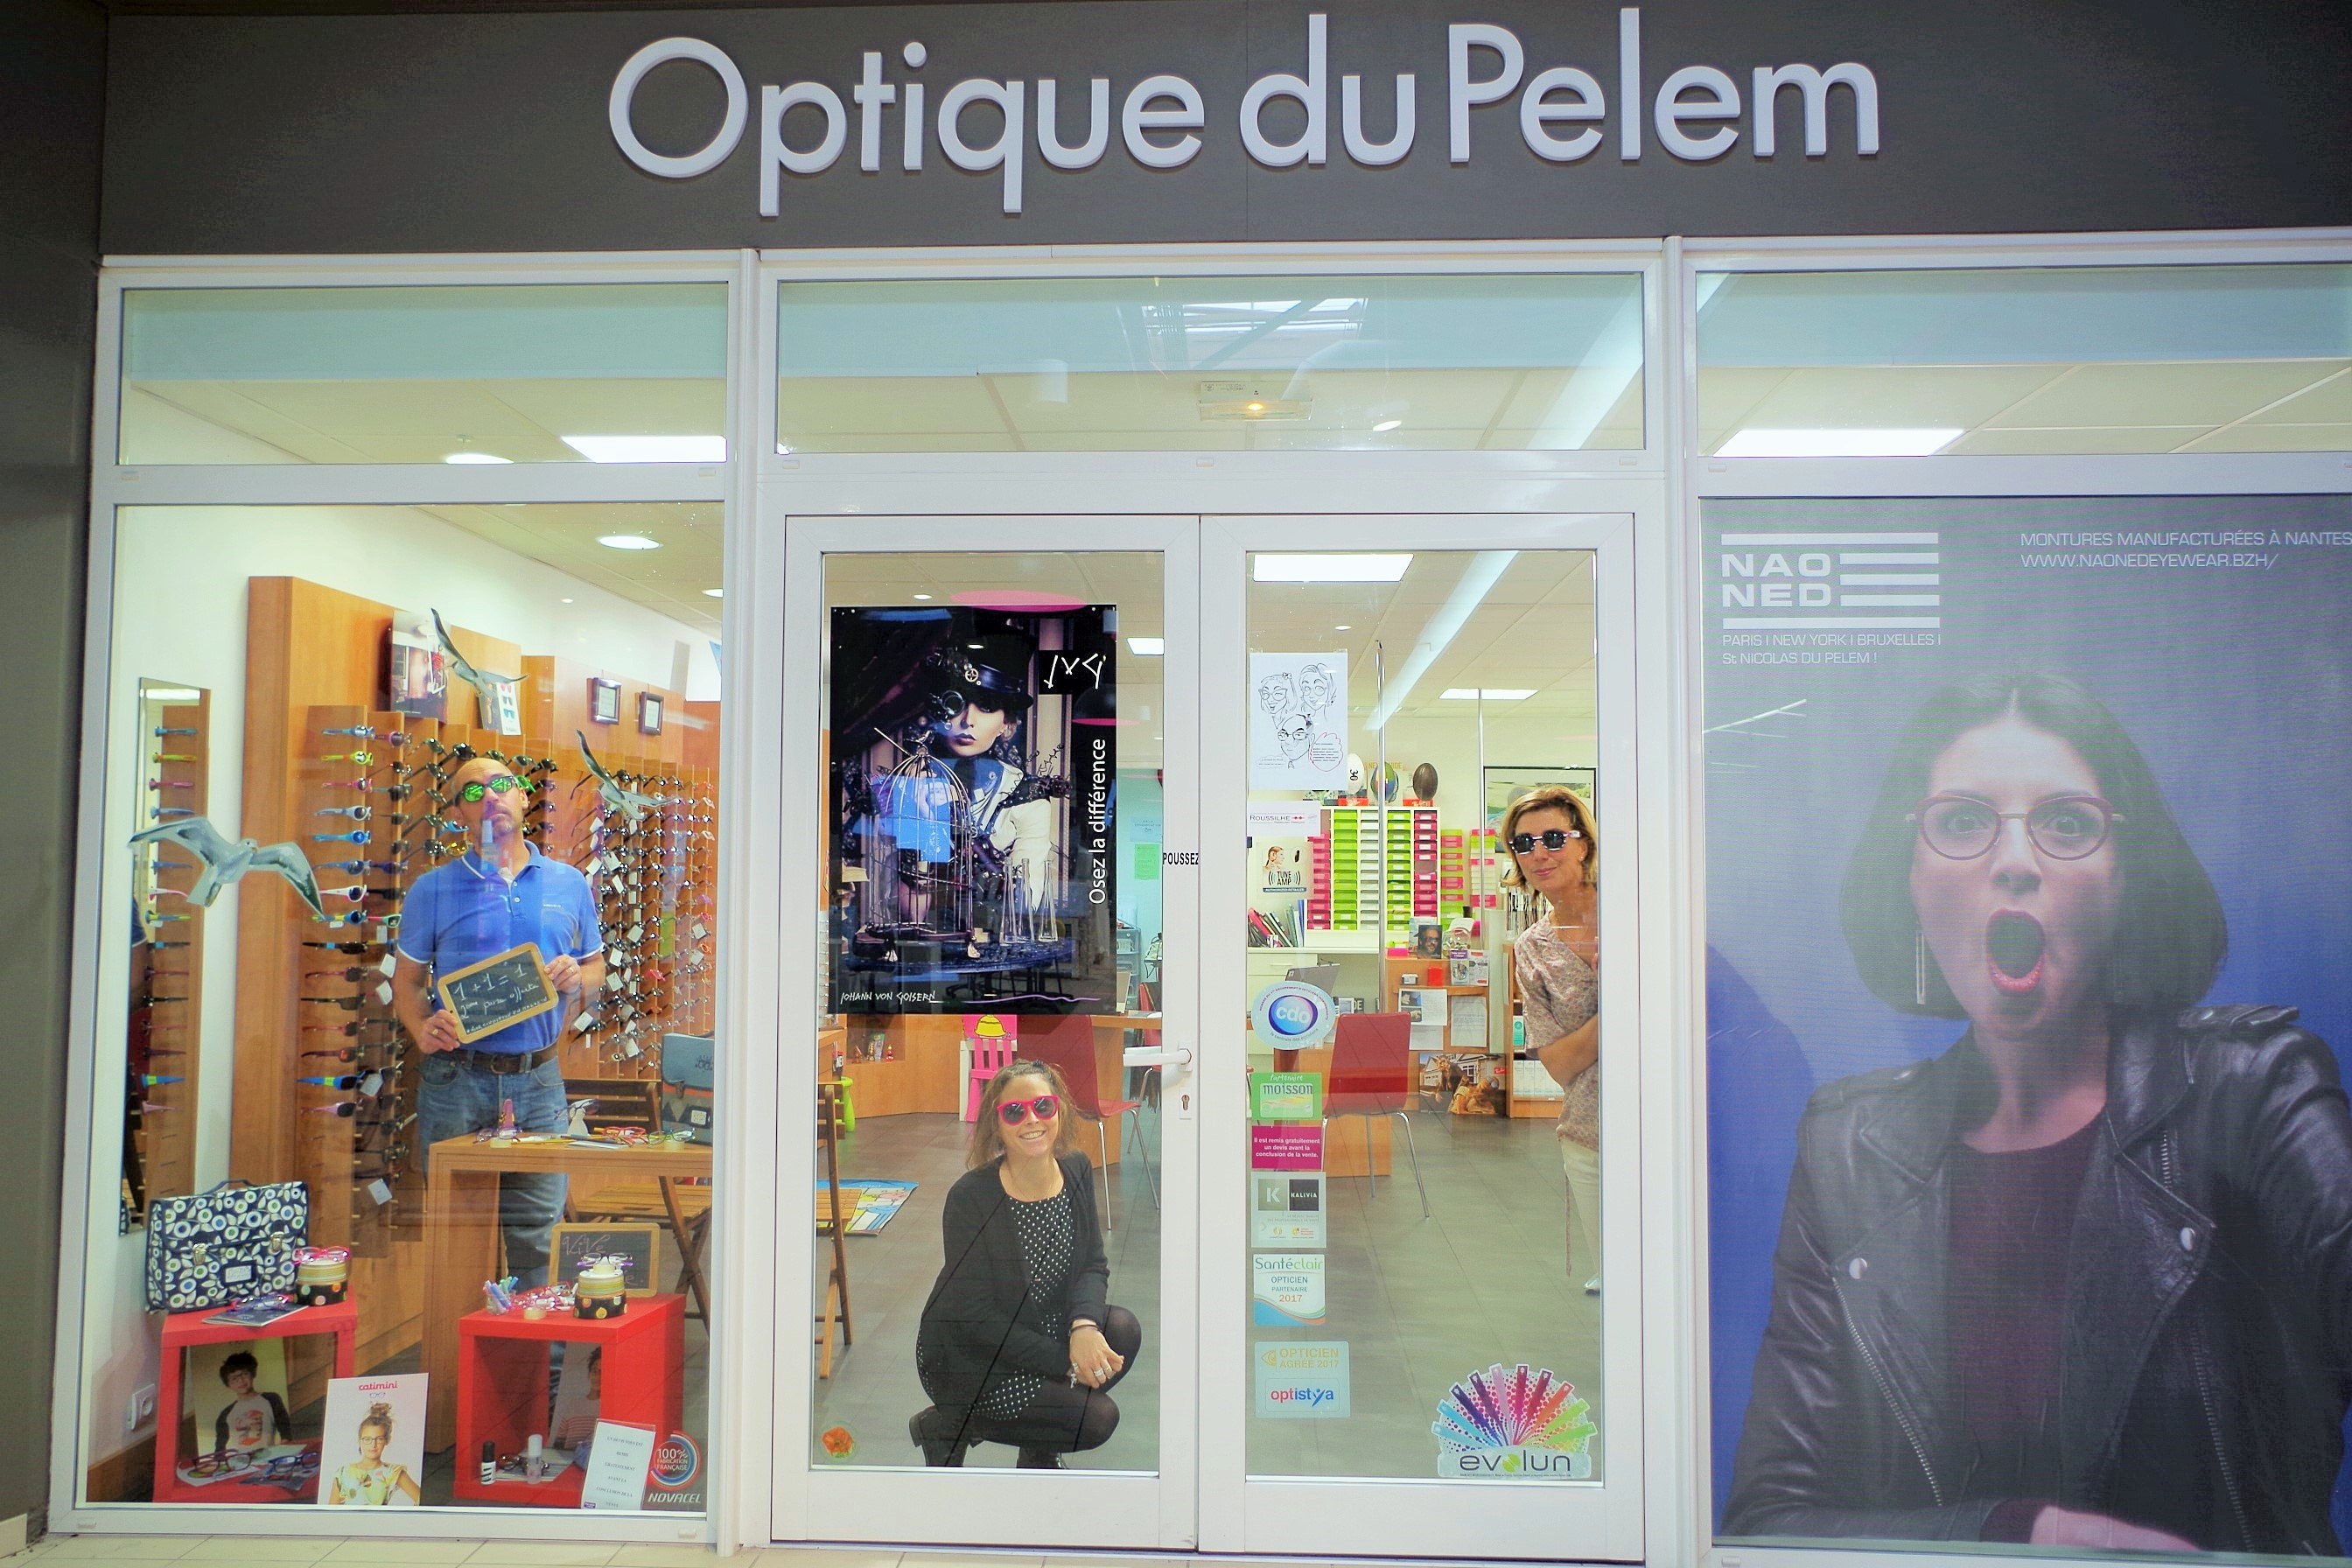 Opticien : OPTIQUE DU PELEM,  Croas Don Herry, 22480 SAINT NICOLAS DU PELEM